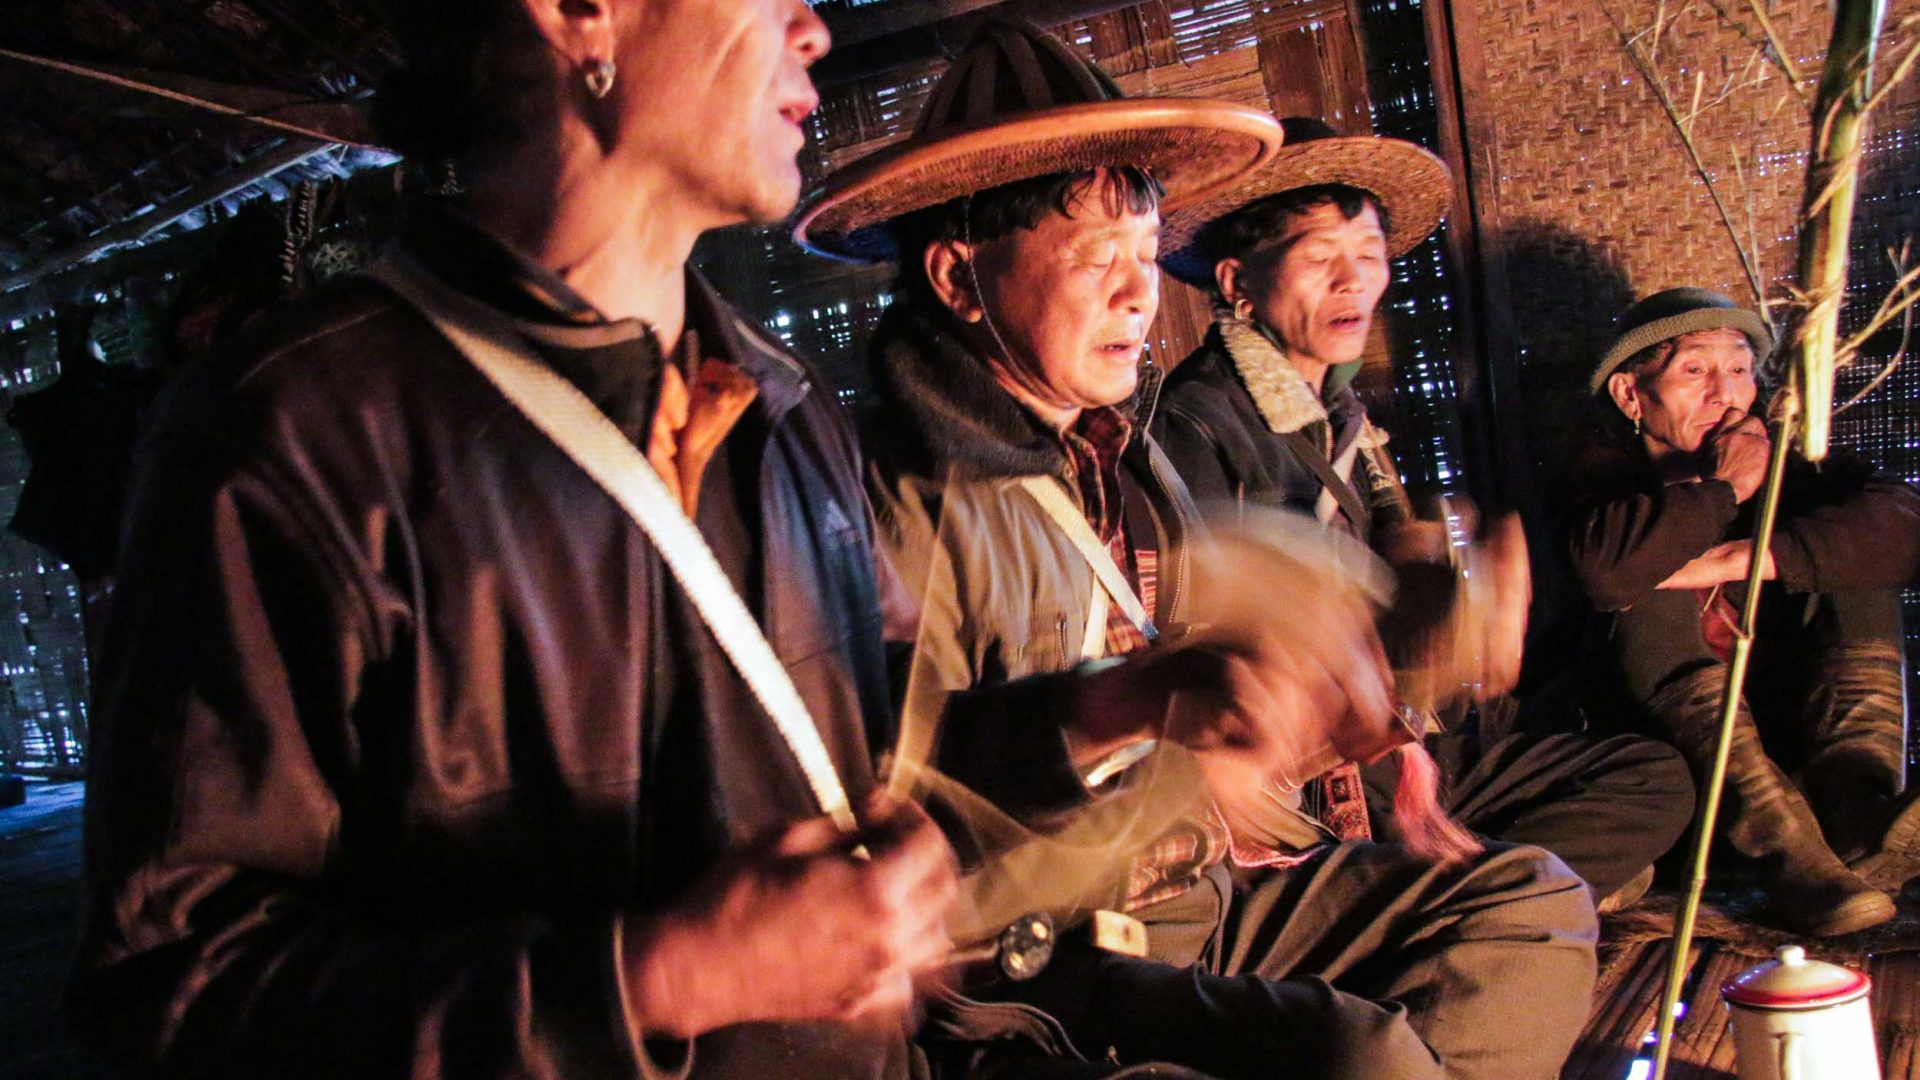 The Idu Shamans (igu) chanting at Reh Festival in Arunachal Pradesh, India.